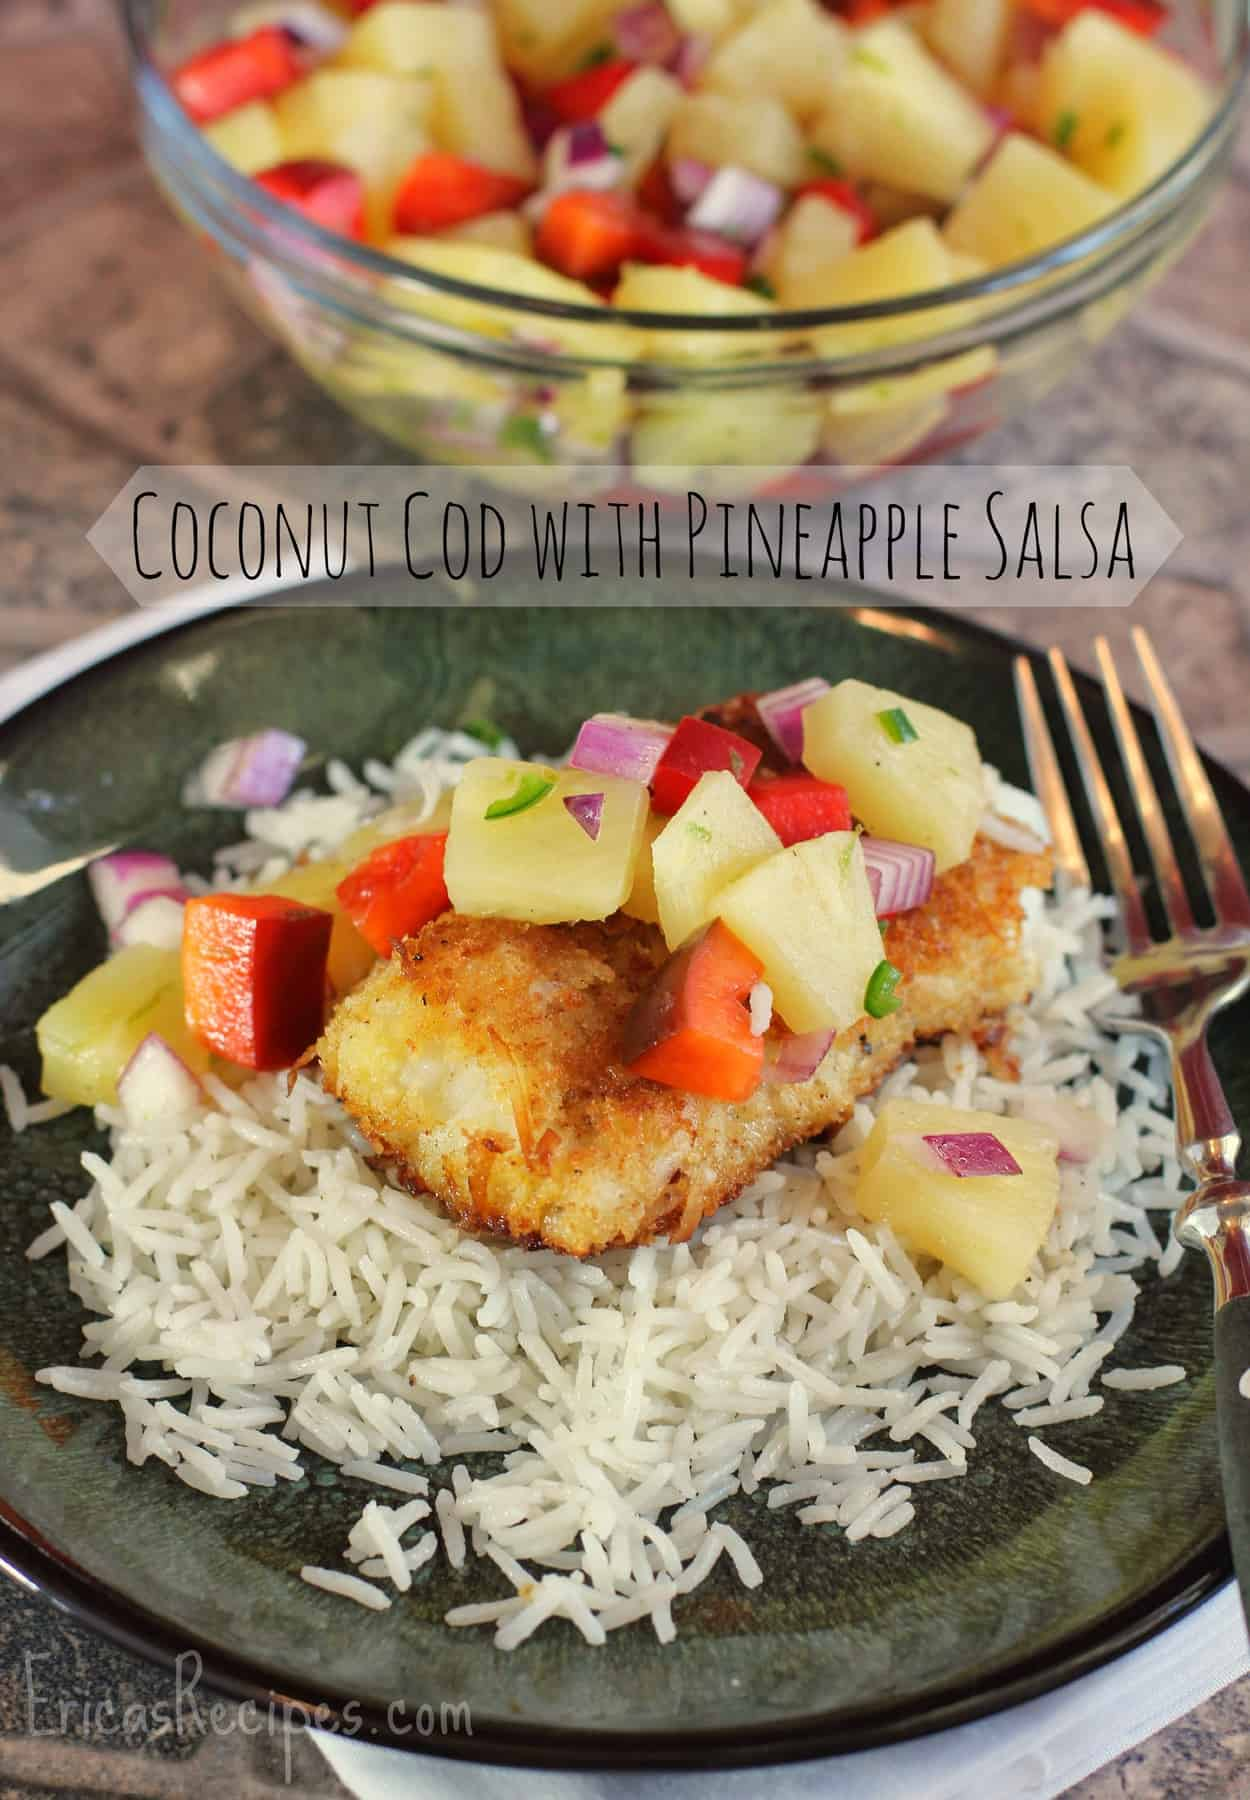 Light and crispy coconut crusted cod, topped with a lovely pineapple salsa and served over coconut rice. This inspired Coconut Cod with Pineapple Salsa recipe combines elements into a lovely dinner for all. #seafoodrecipe #fishrecipe #codrecipe #coconutcod #food #salsa